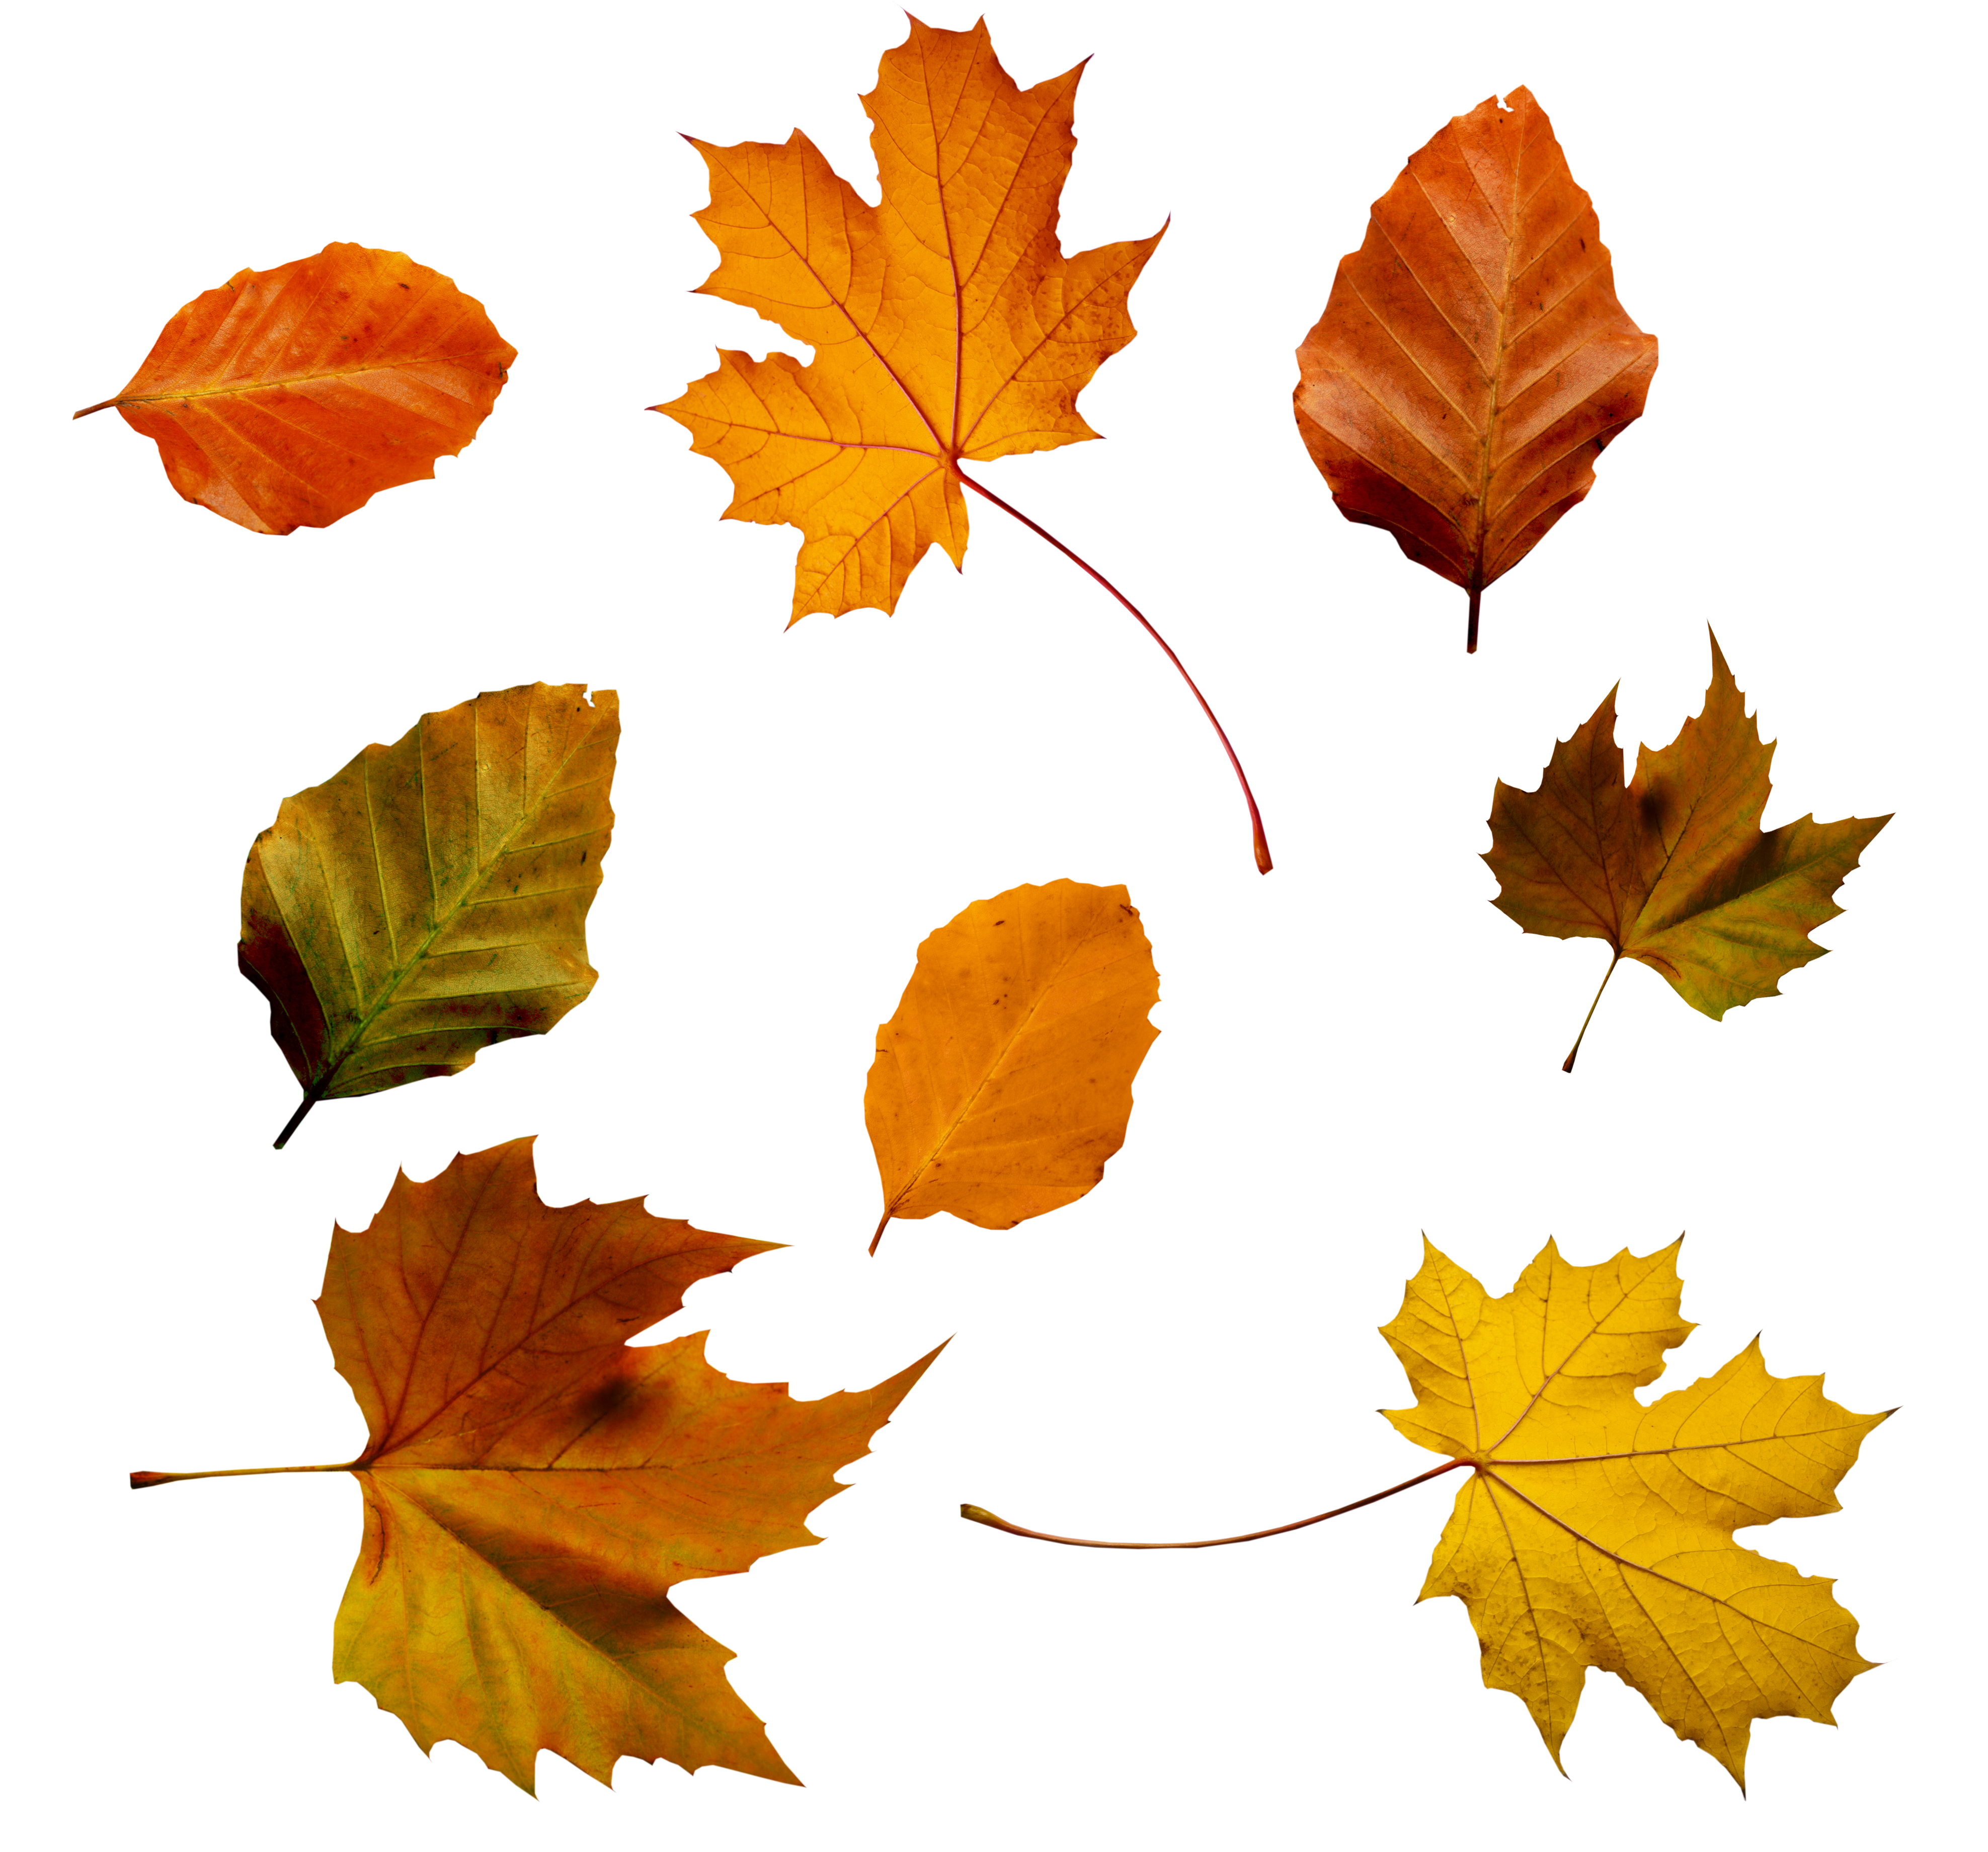 Autumn Leaves PSD By Atticresources On Clipart Library - Autumn Leaves HD PNG